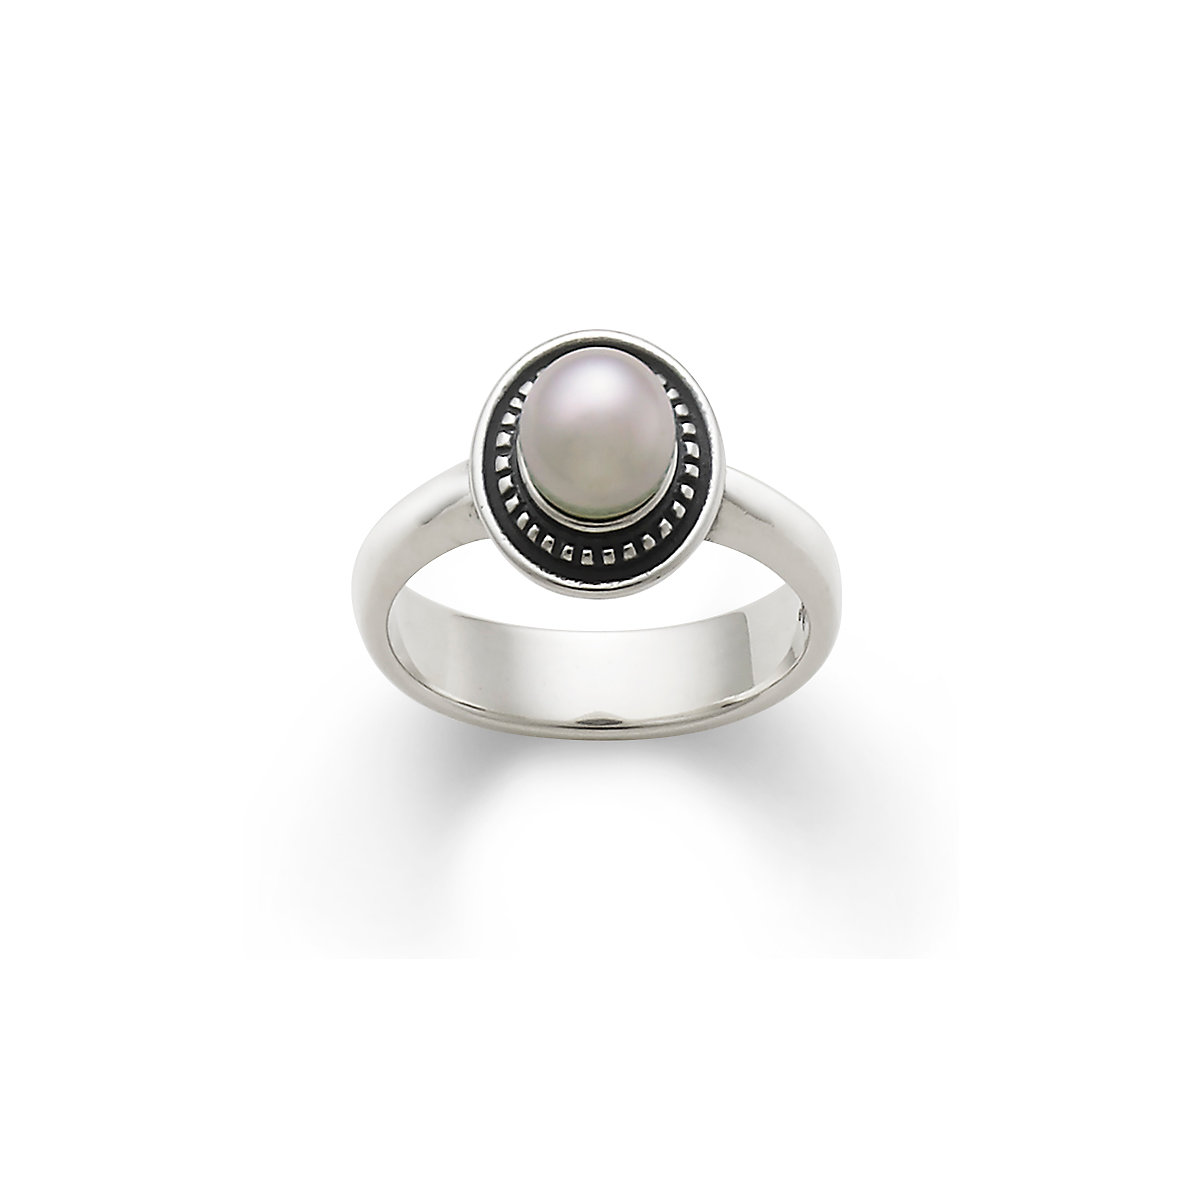 rings gift natural aaaa for wedding accessories quality engagement pearl women lindo jewelry high